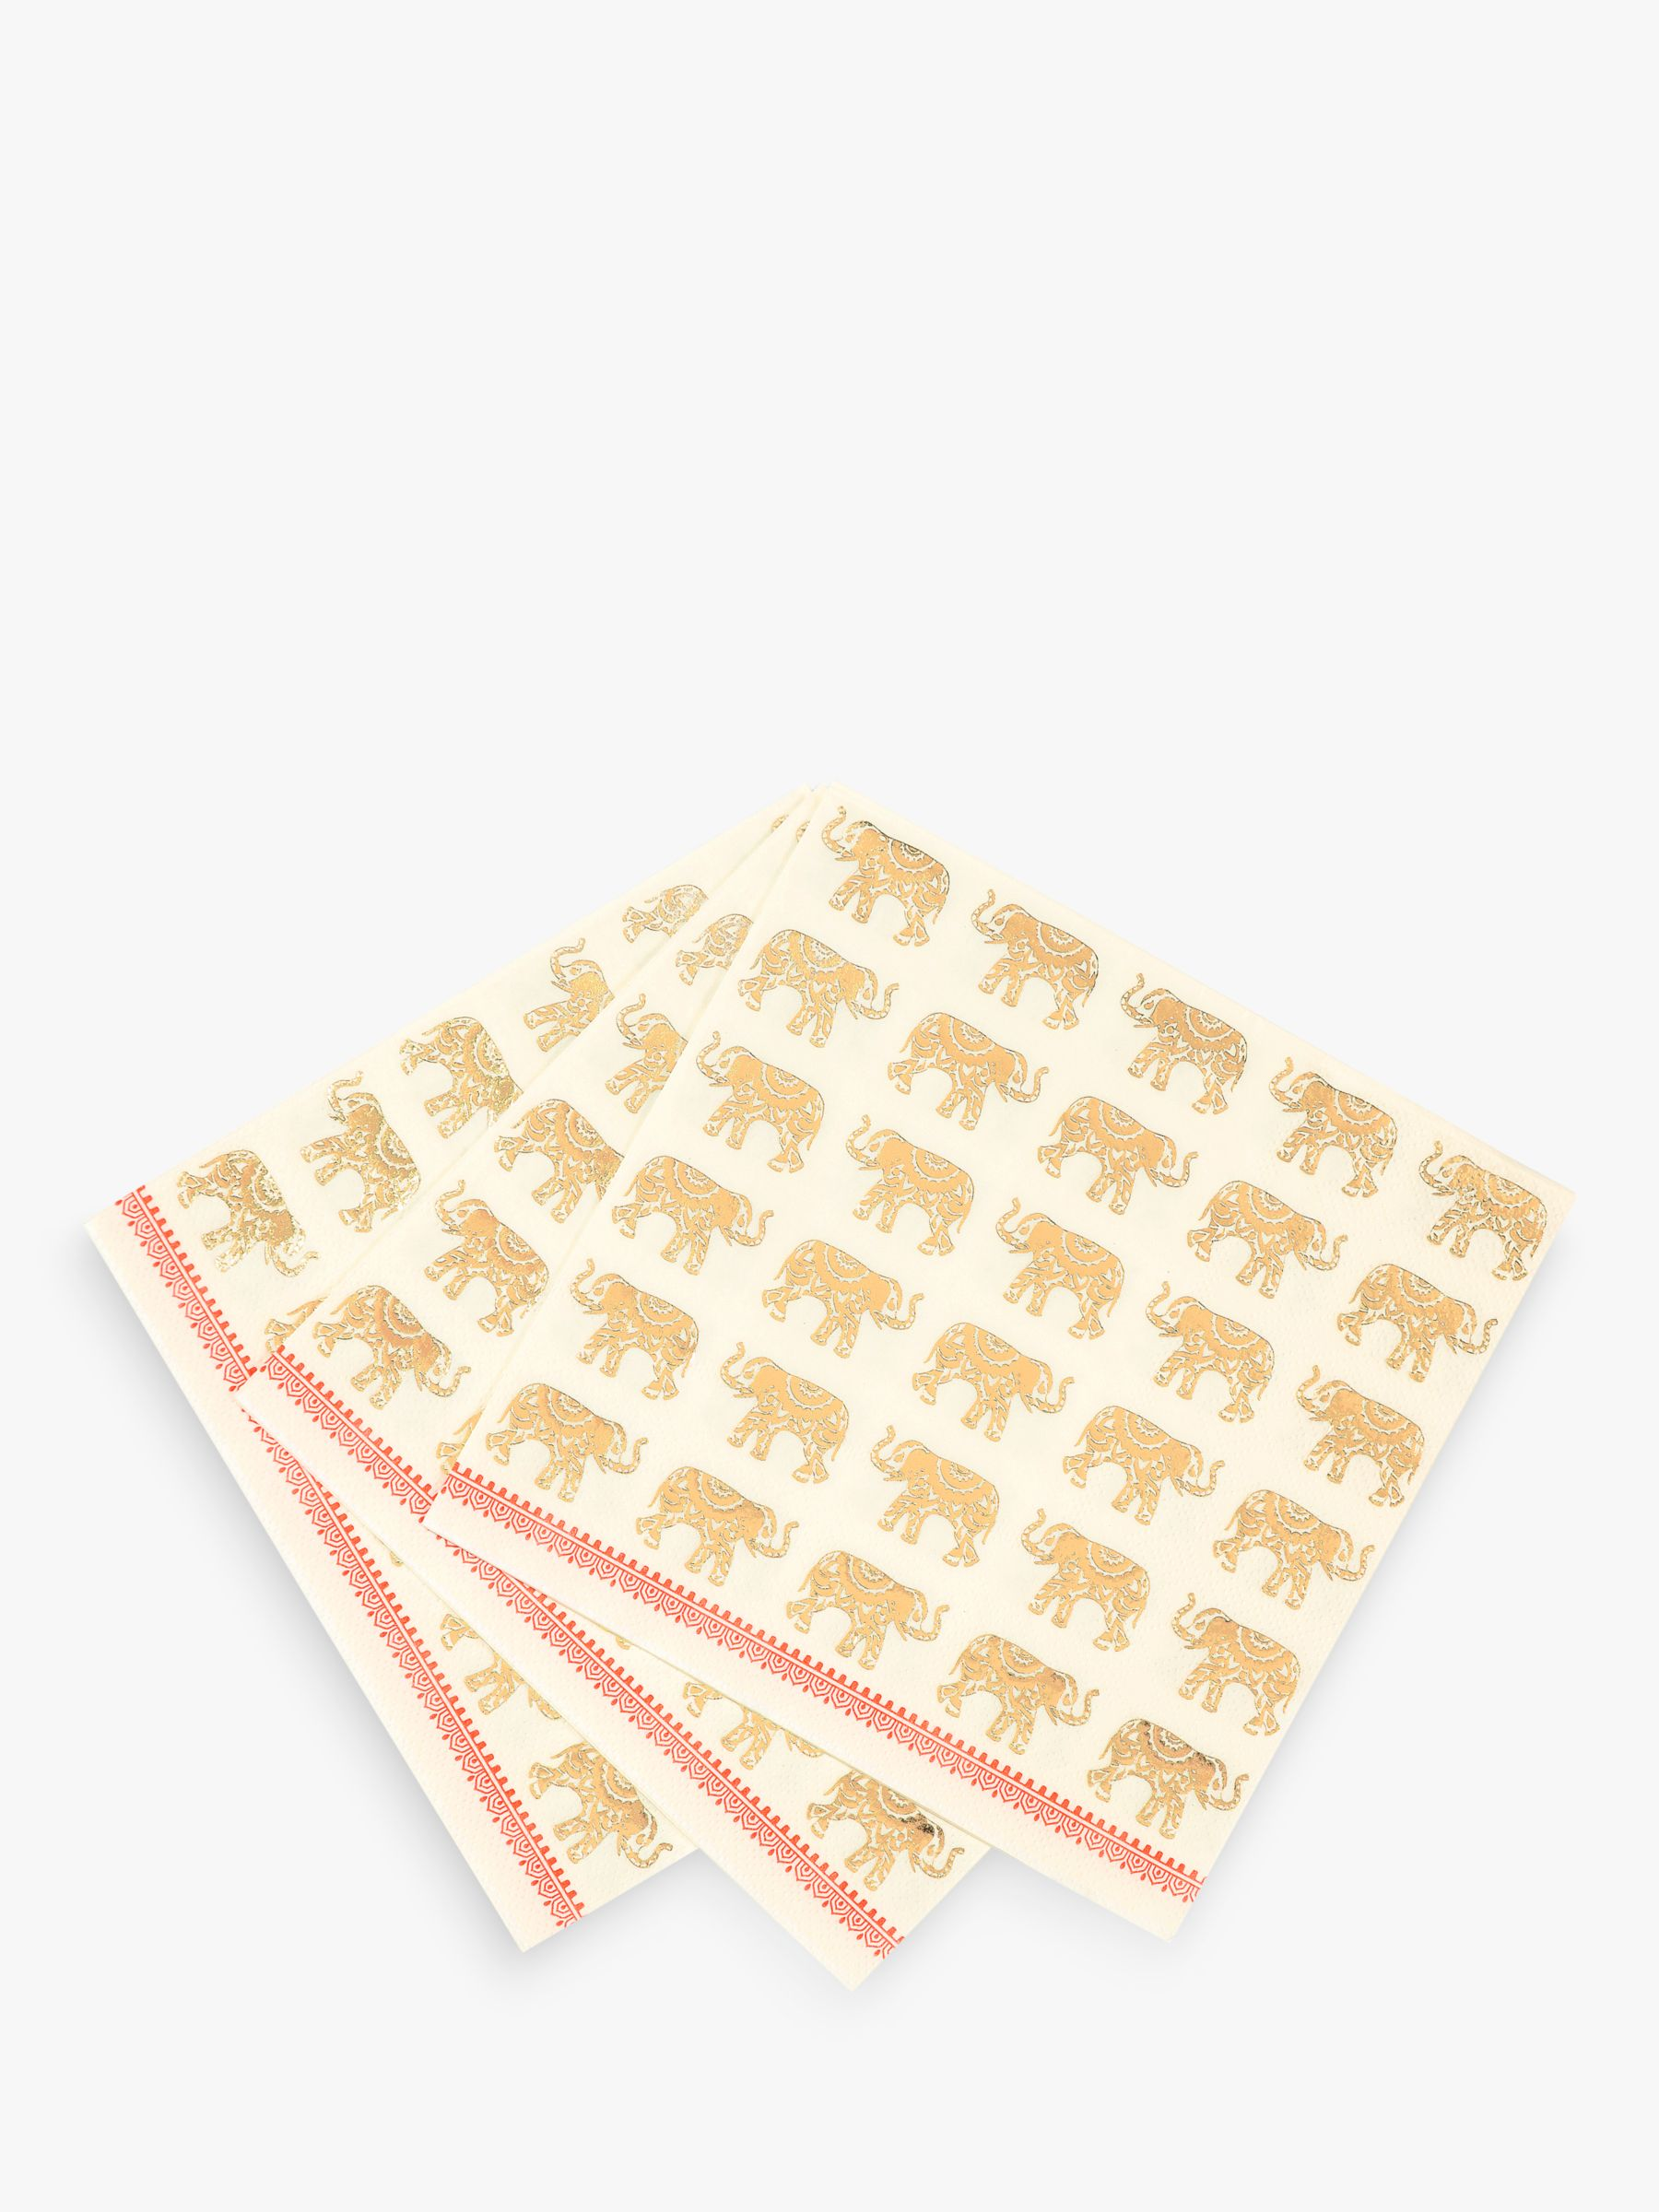 Talking Tables Talking Tables Elephant Disposable Napkins, Pack of 16